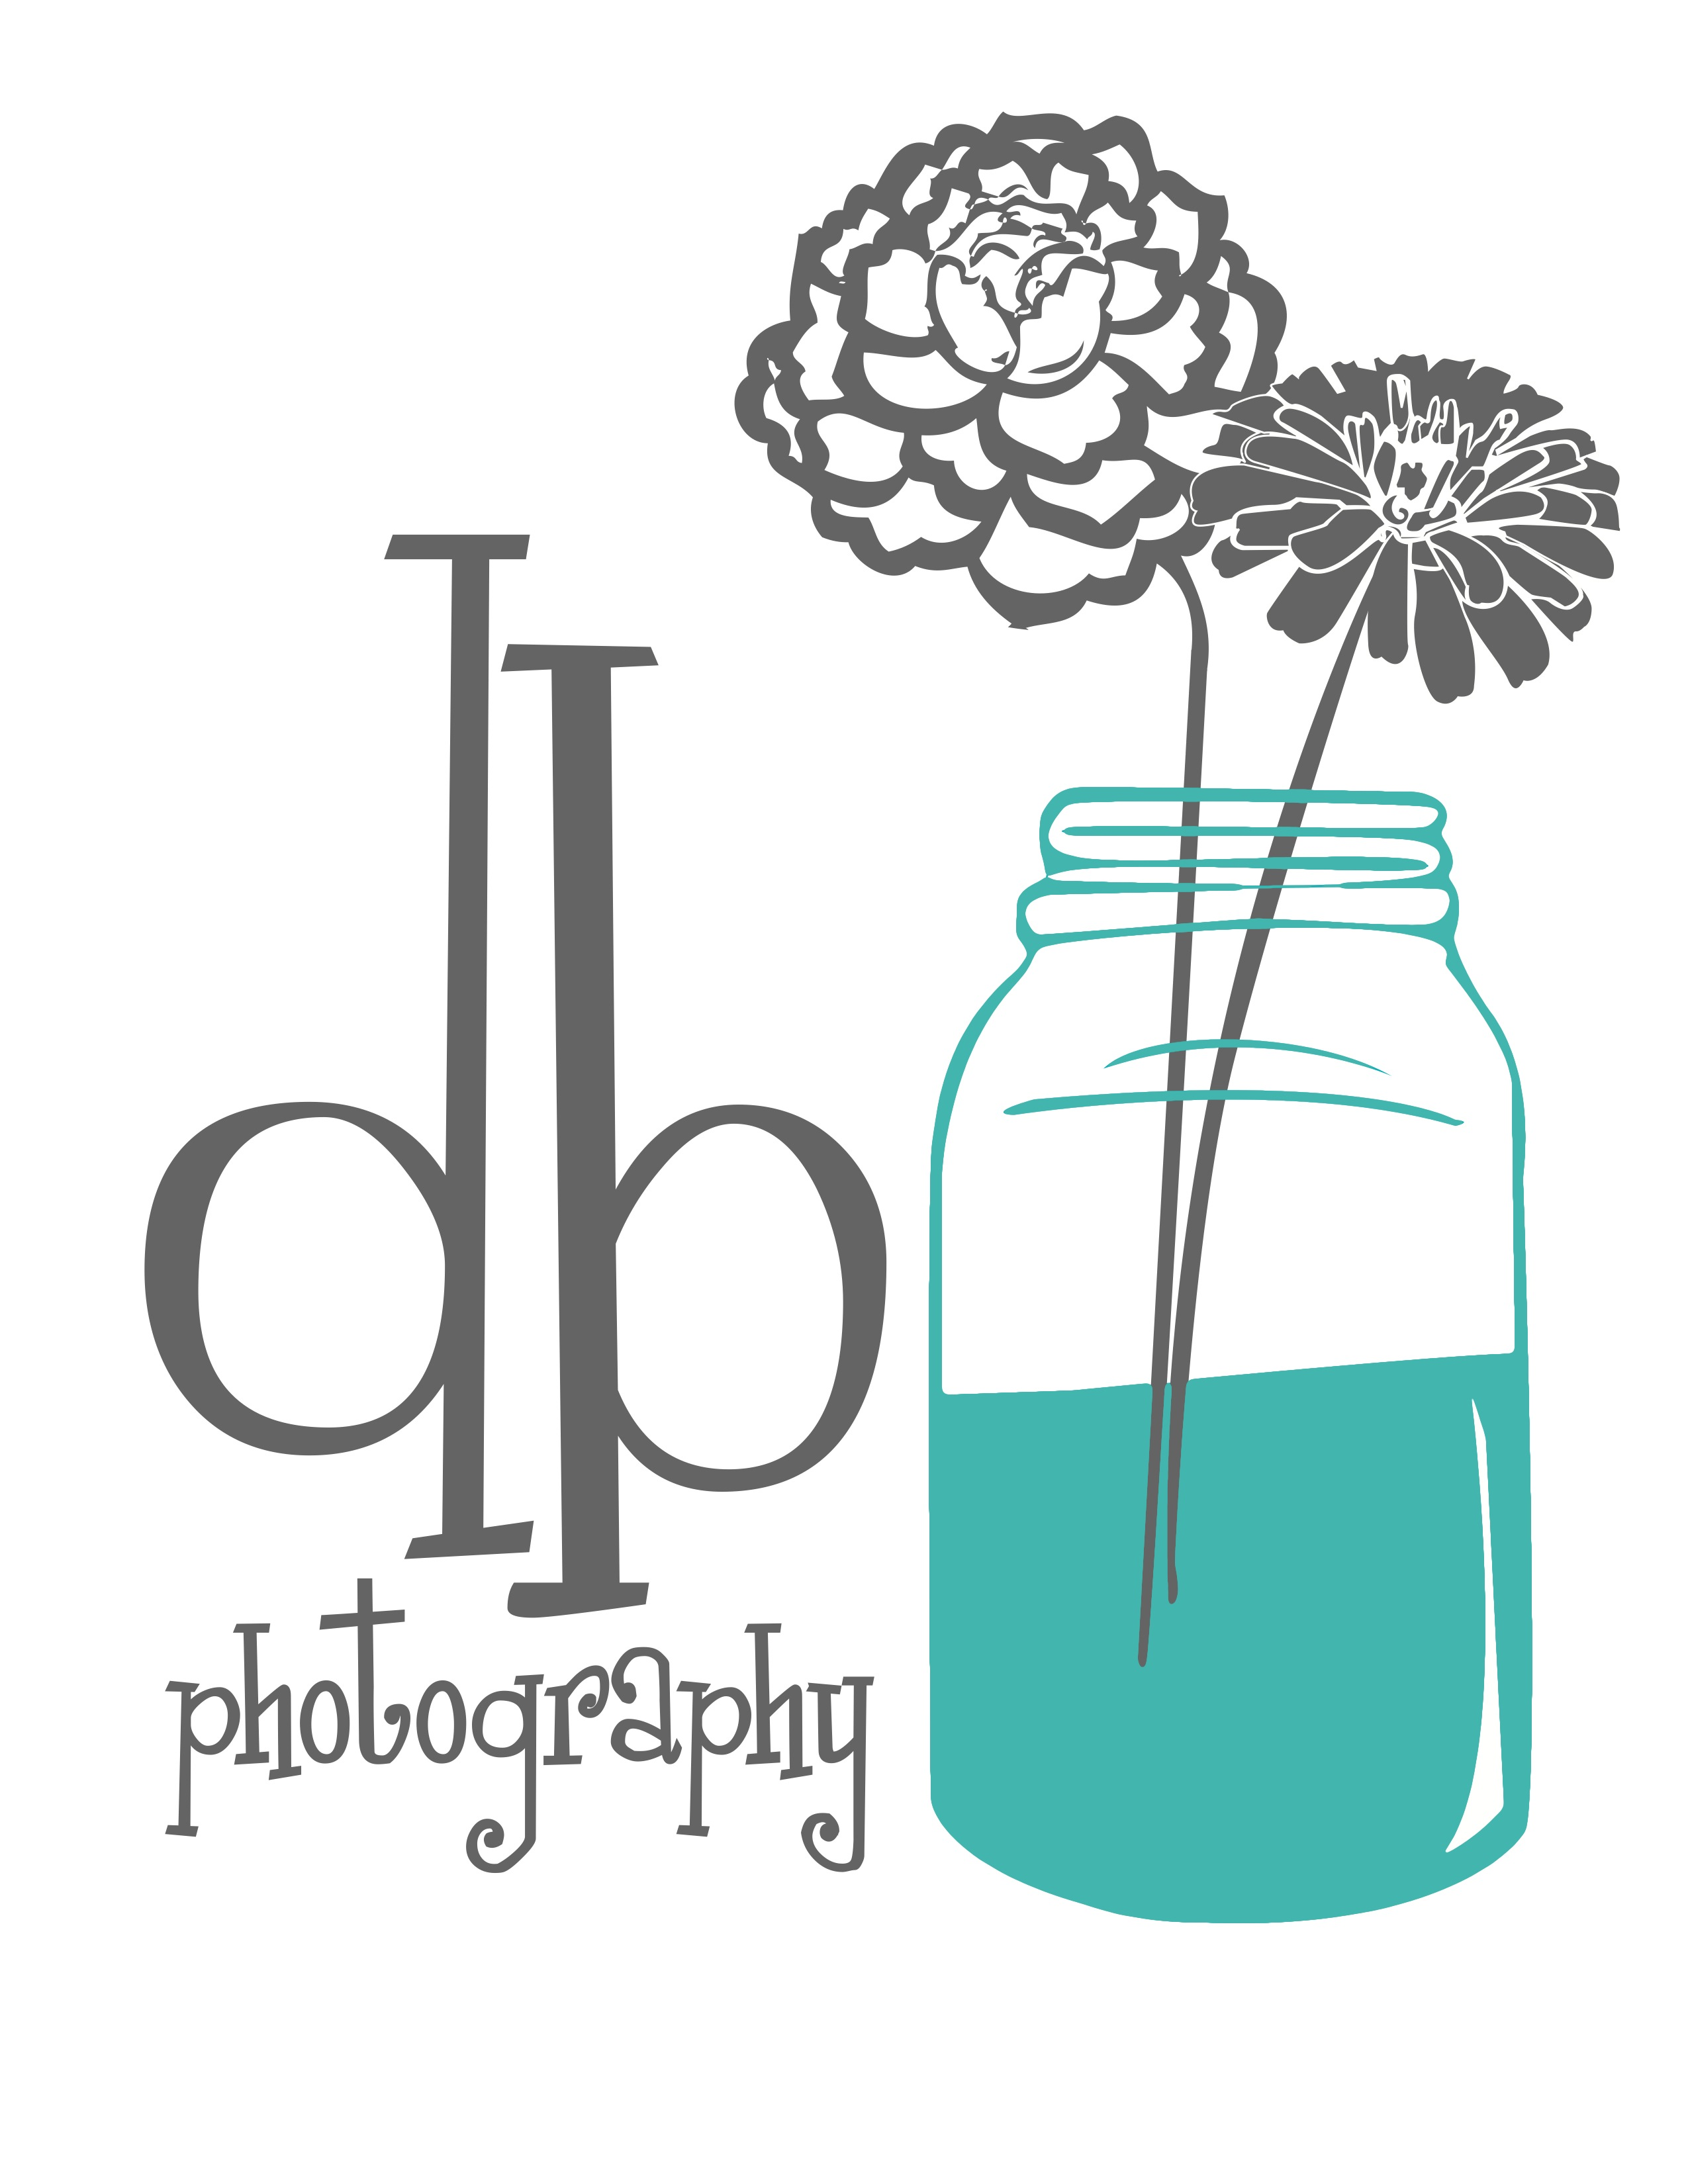 db photography